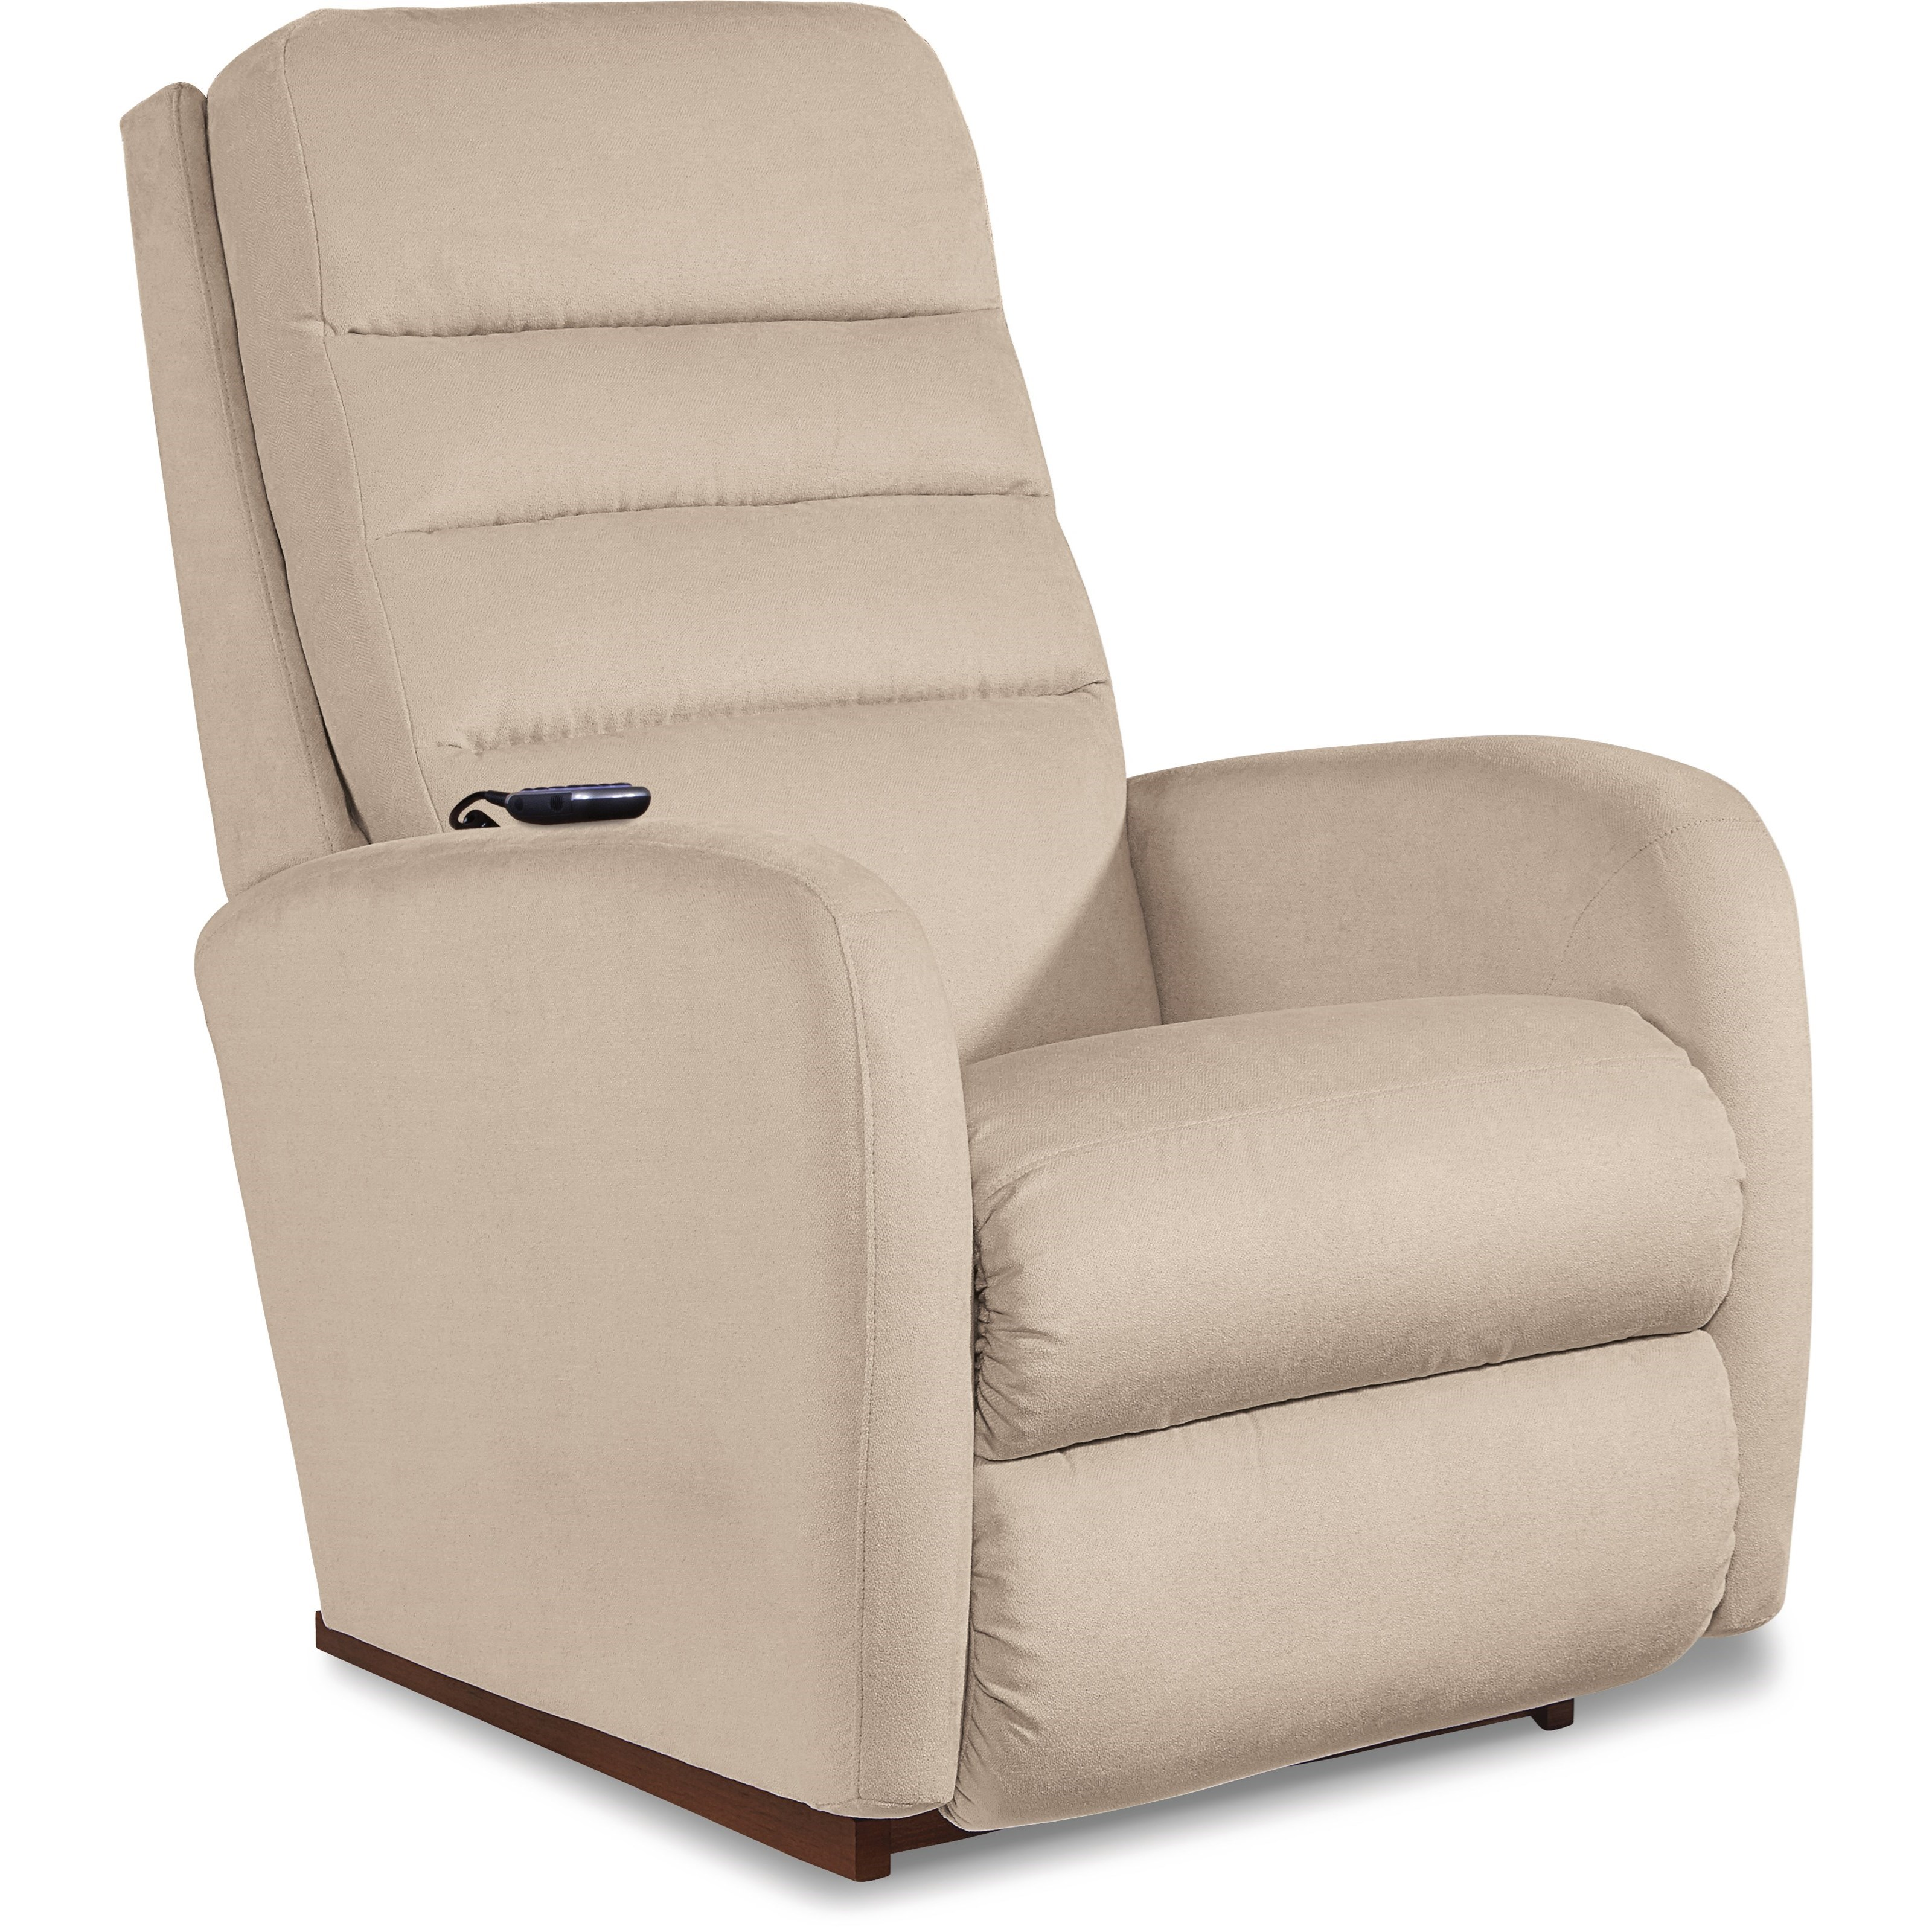 Contemporary Power-Recline-XR+ RockingRecliner with Adjustable Headrest and Lumbar